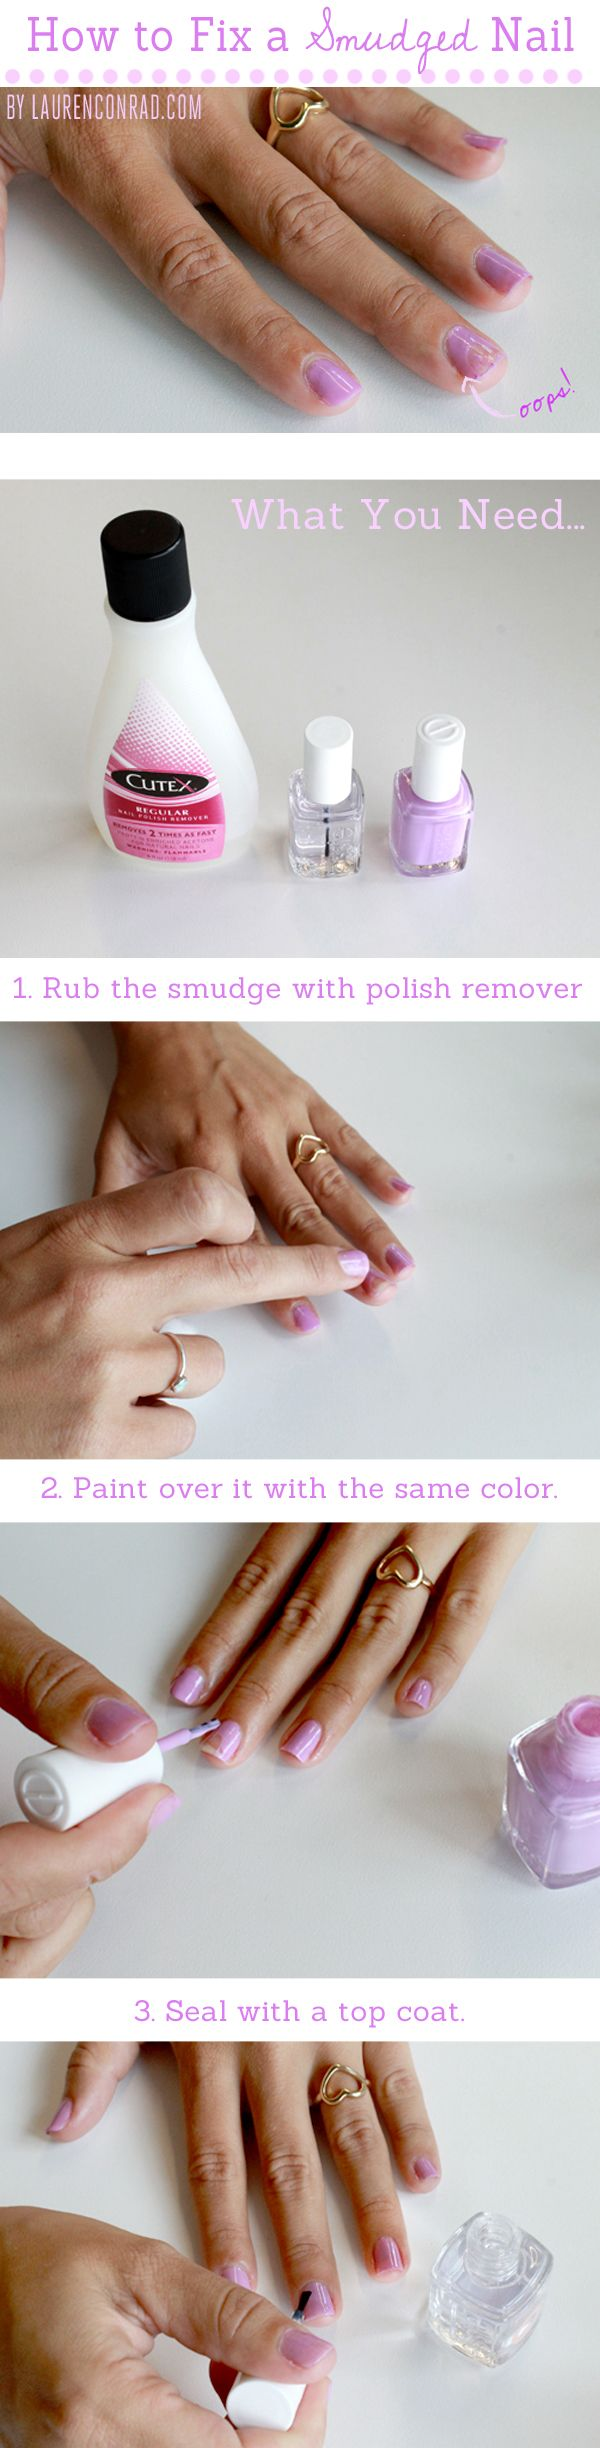 Beauty 911 How To Fix A Smudged Nail Nail Tips Manicure Nail Manicure